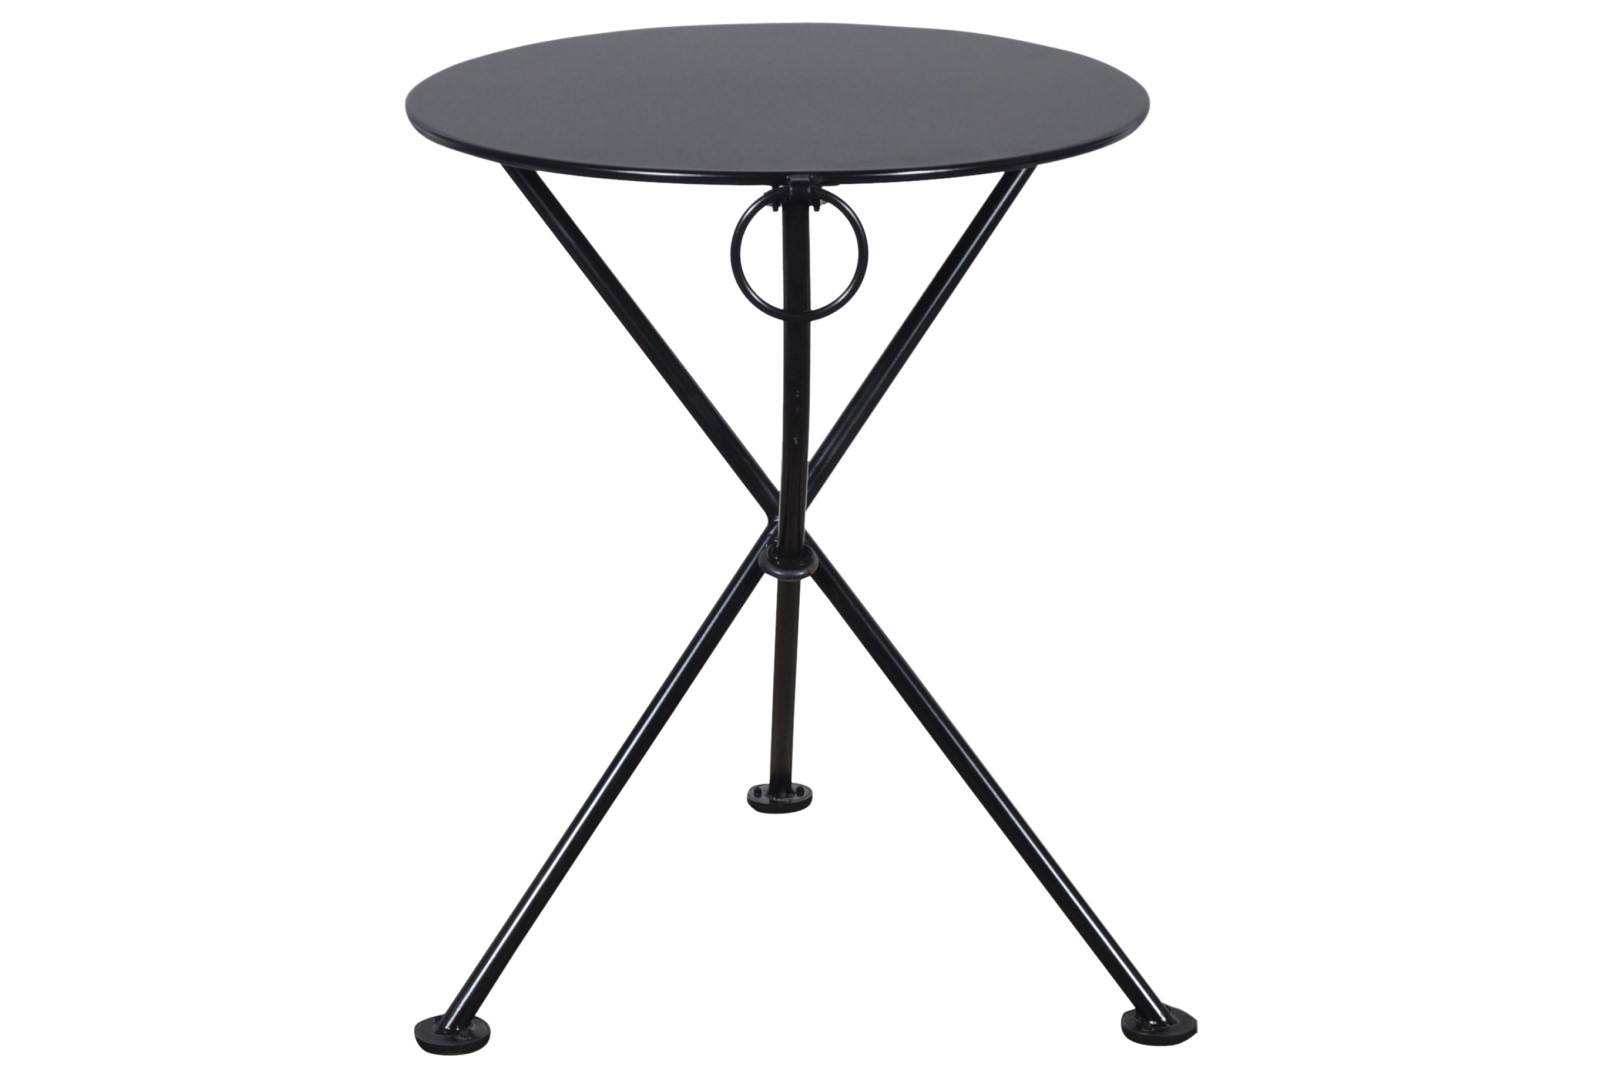 Round Top Steel 3-leg Tables Outdoor Folding Page